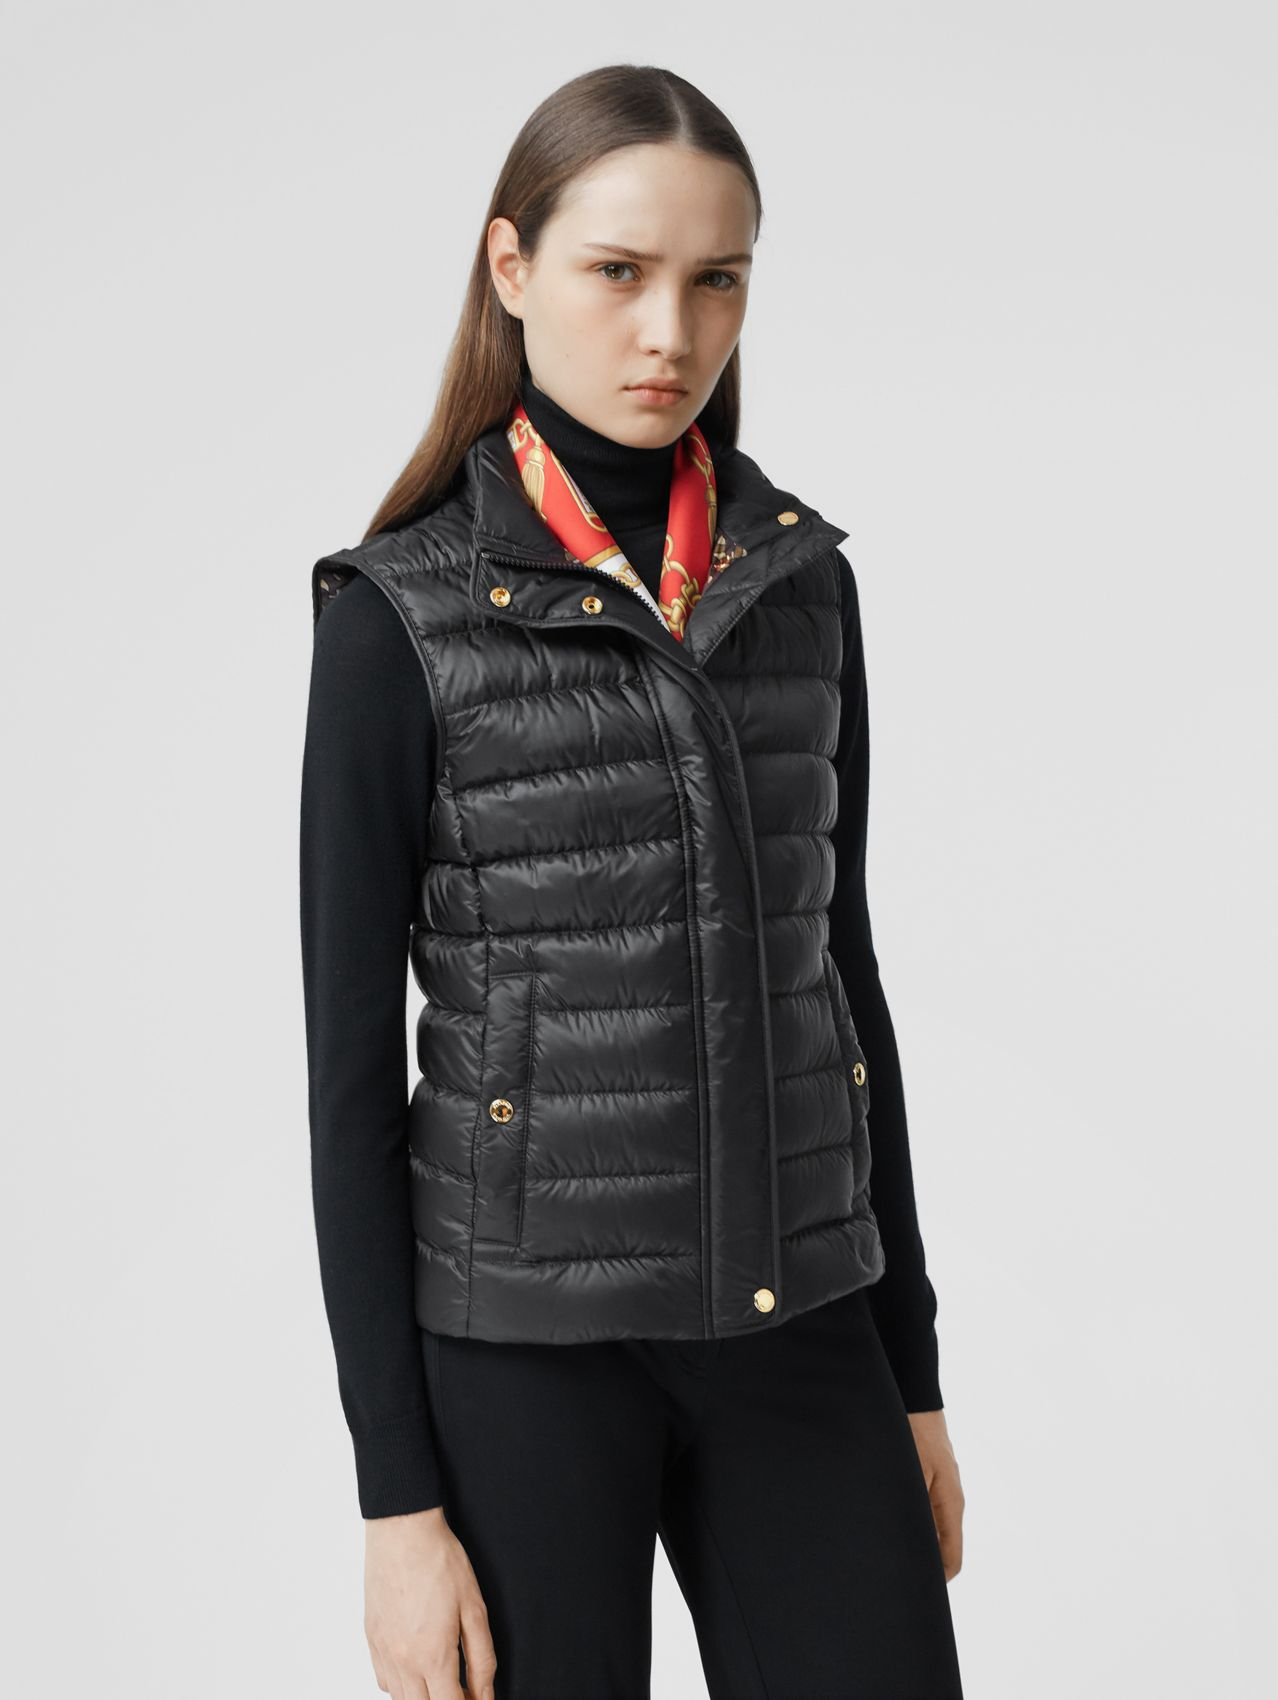 Monogram Print-lined Lightweight Puffer Gilet in Black